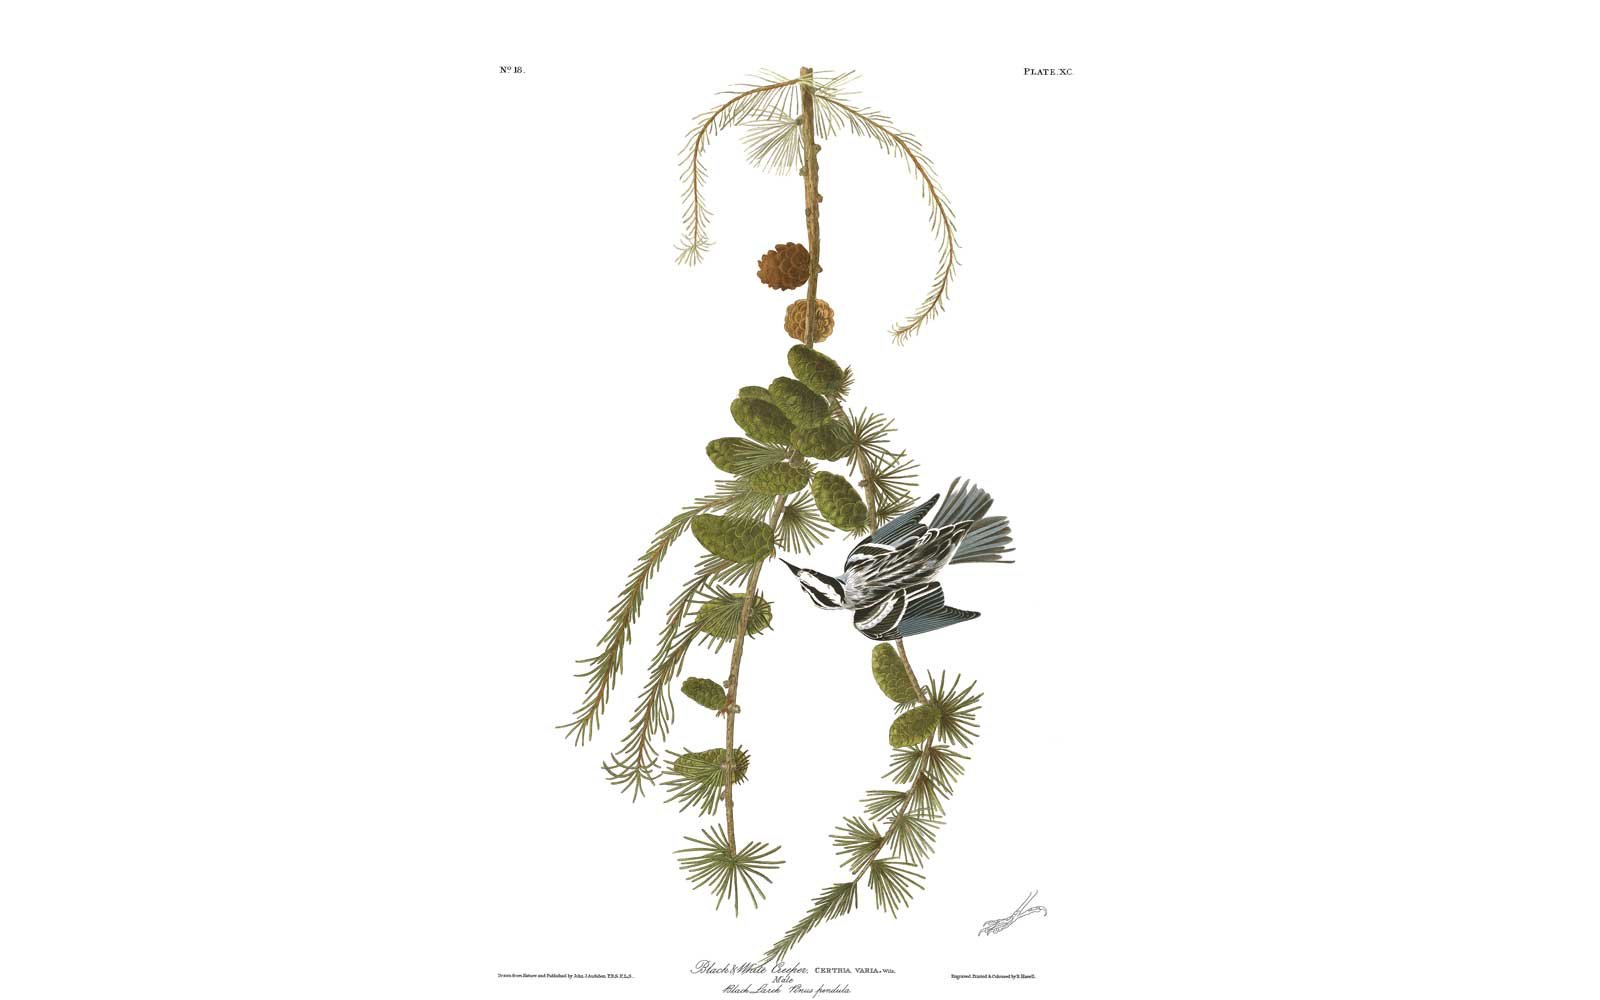 Audubon Birds of America - Black and White Creeper